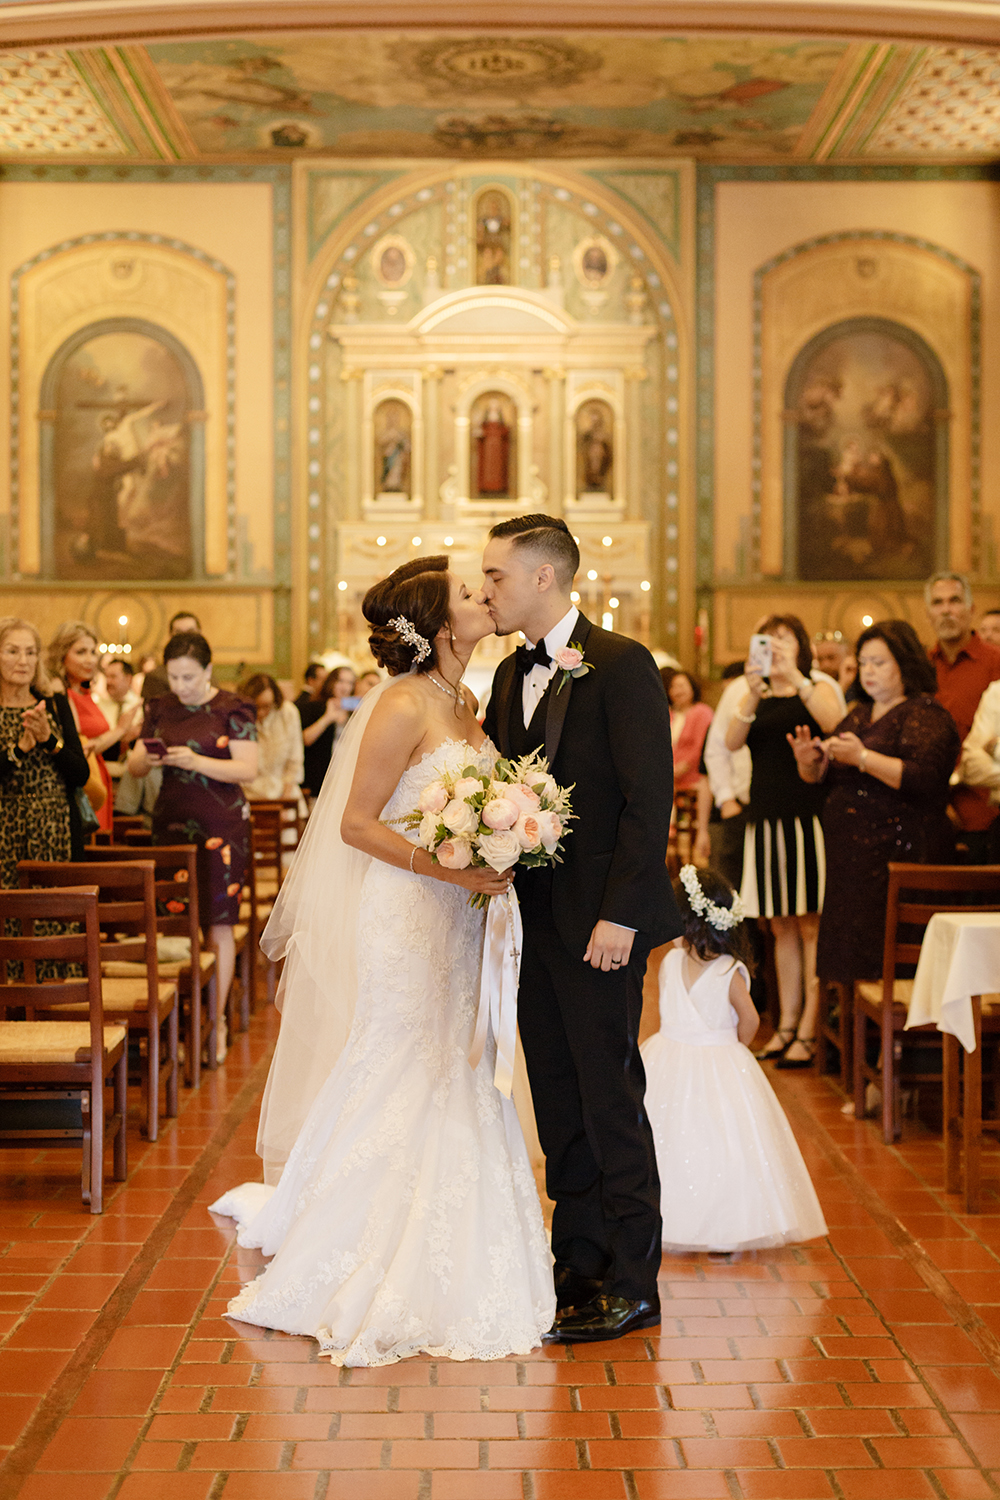 Bride and groom kissing on the church aisle as their guests watch. Mission Santa Clara de Asis wedding.